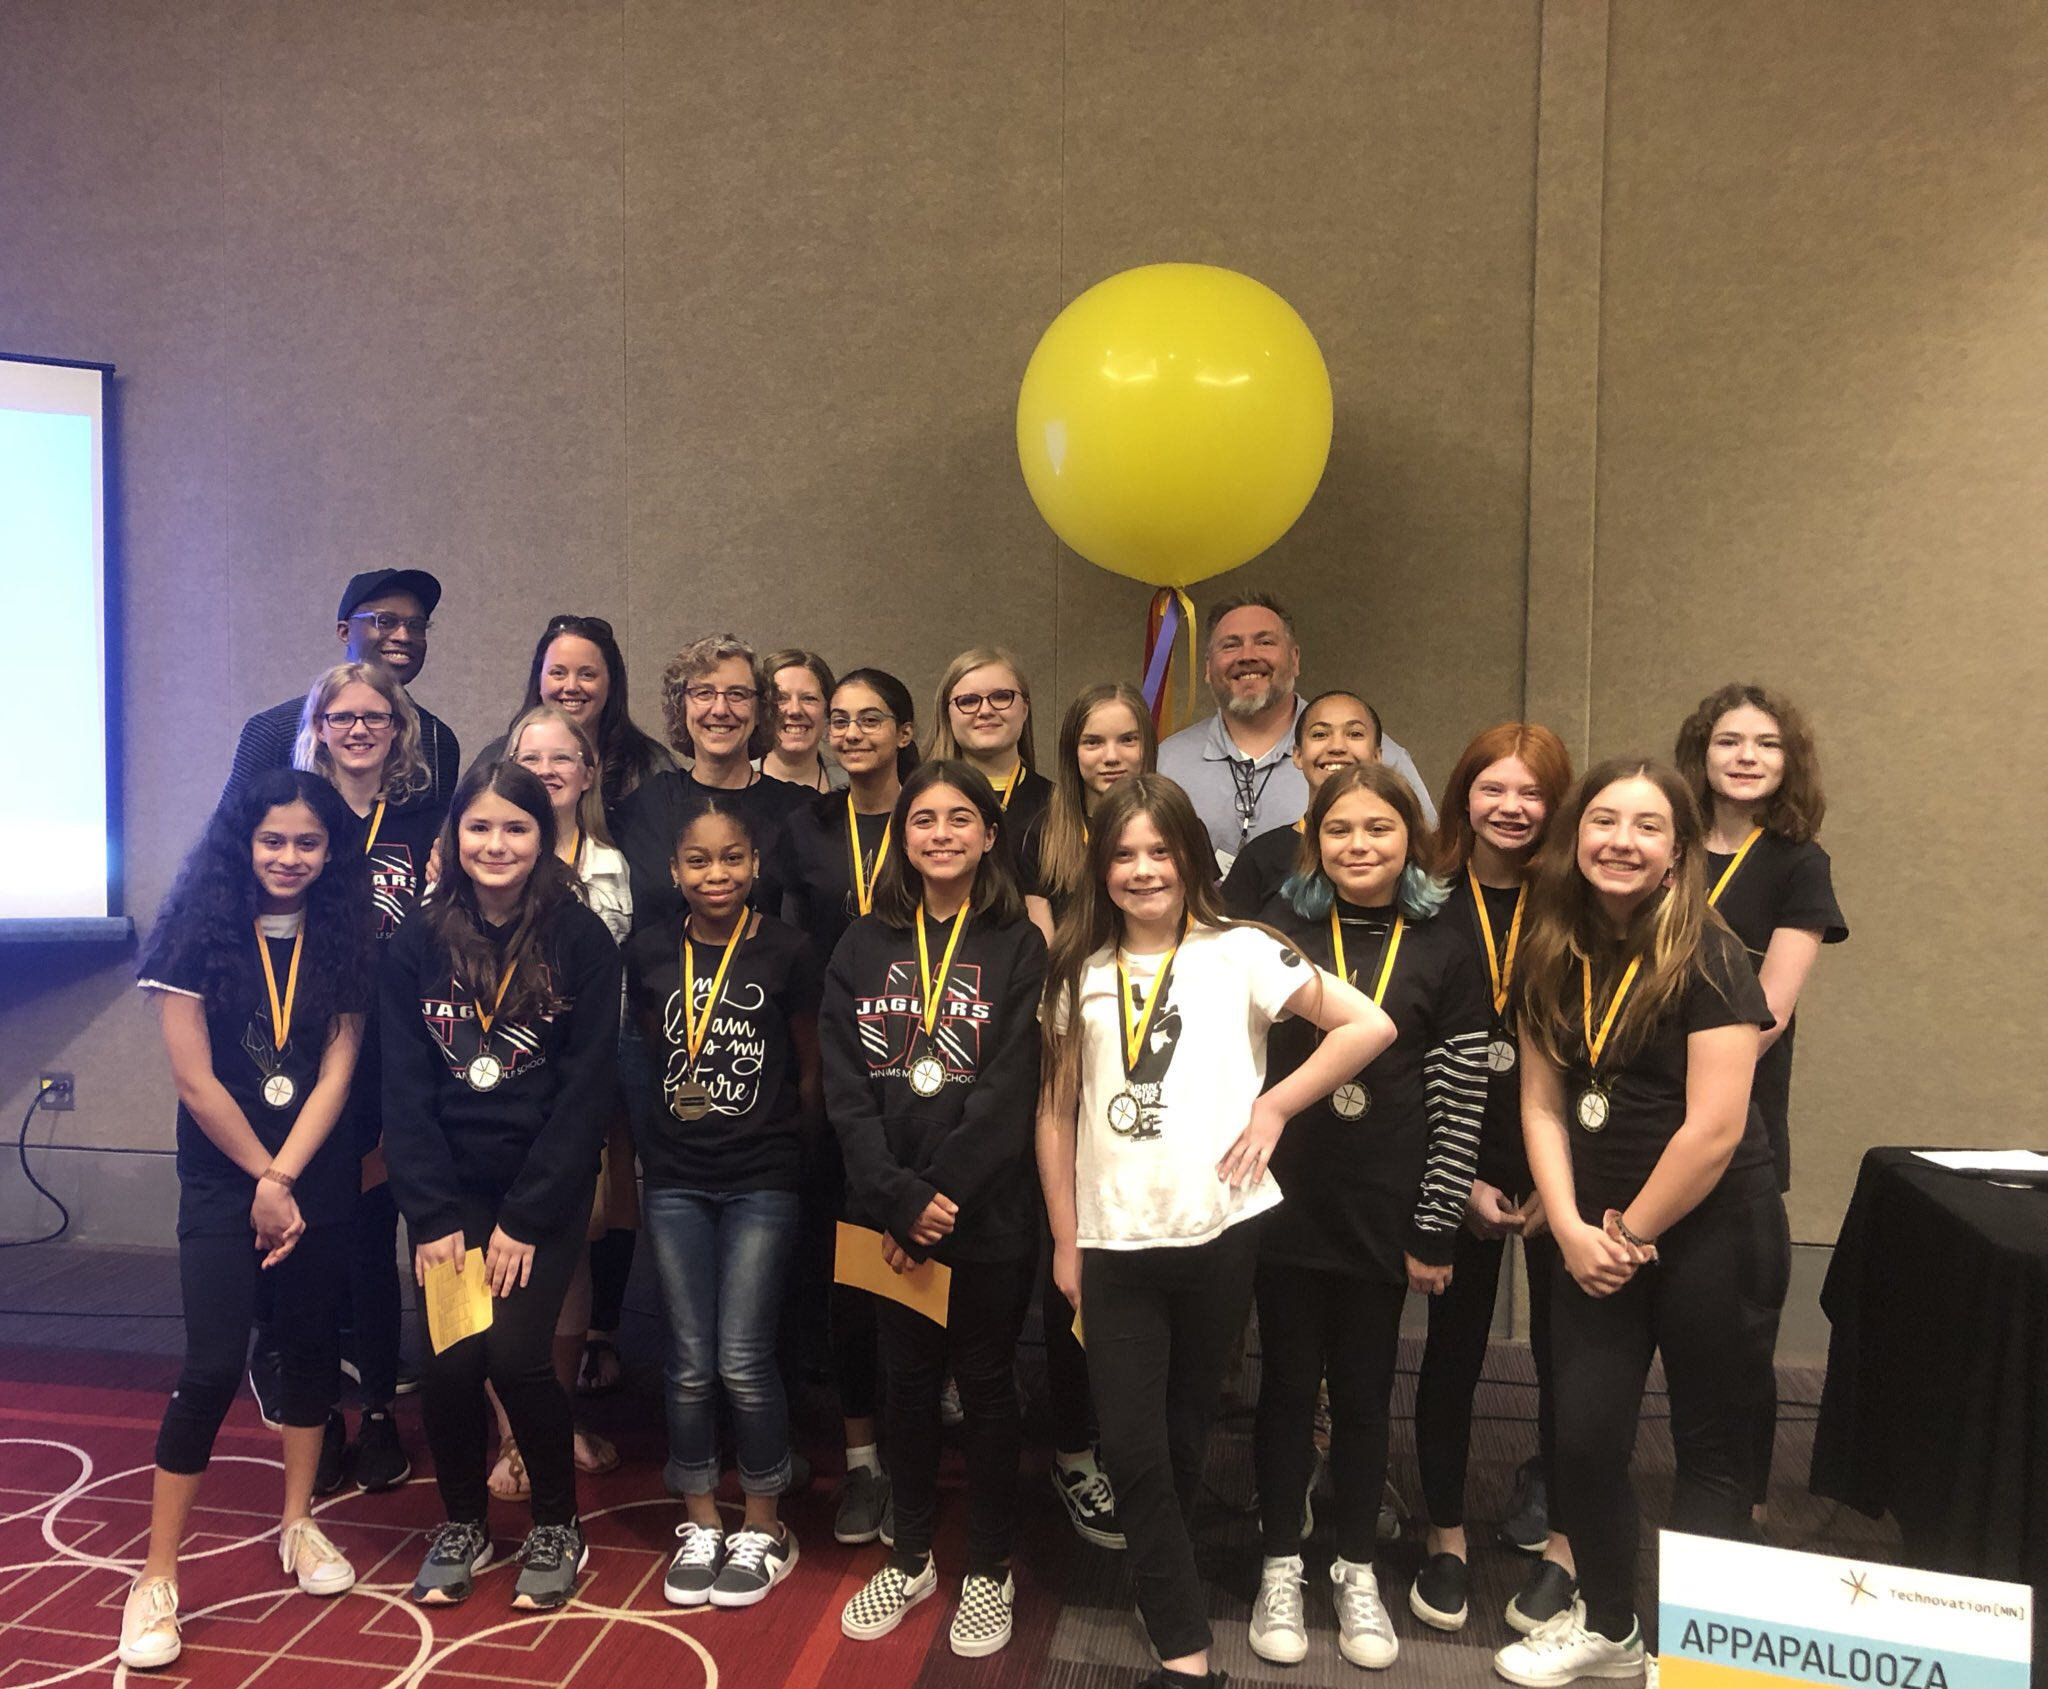 Technovation 2019 Junior Division Teams Waste No More, Canis Major, Single A Battery, Fire Breathing Rubber Duckies (John Adams), Earth Savers and judges